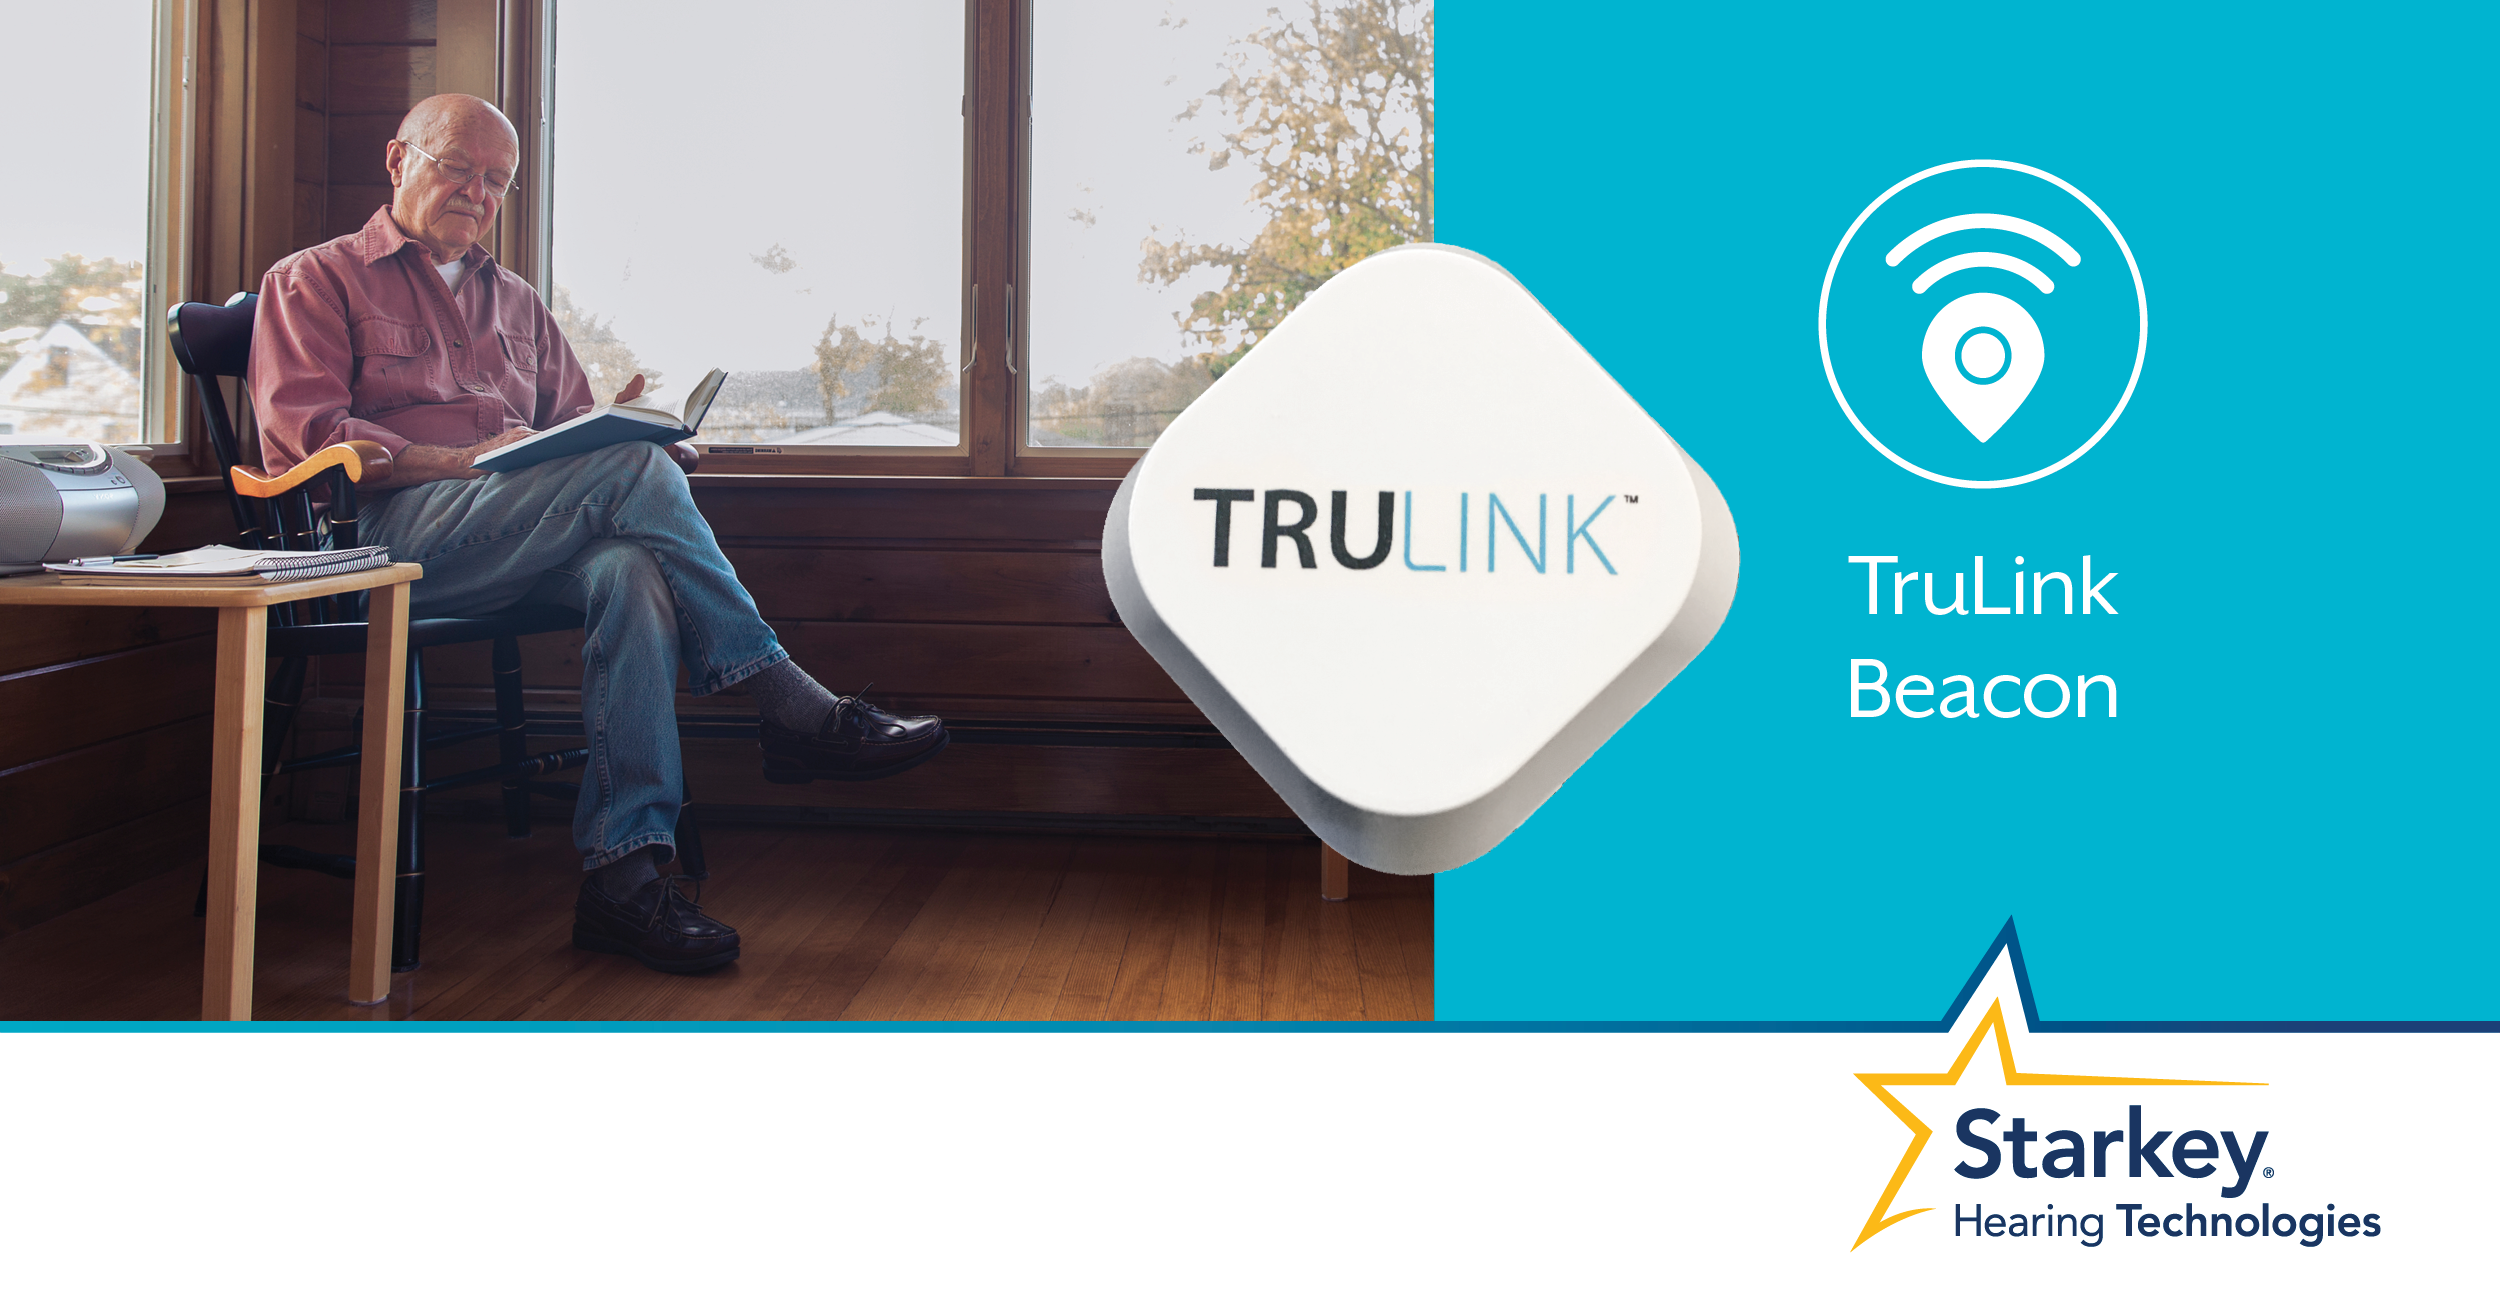 Introducing TruLink beacons for use with Halo or Halo 2 hearing aids.